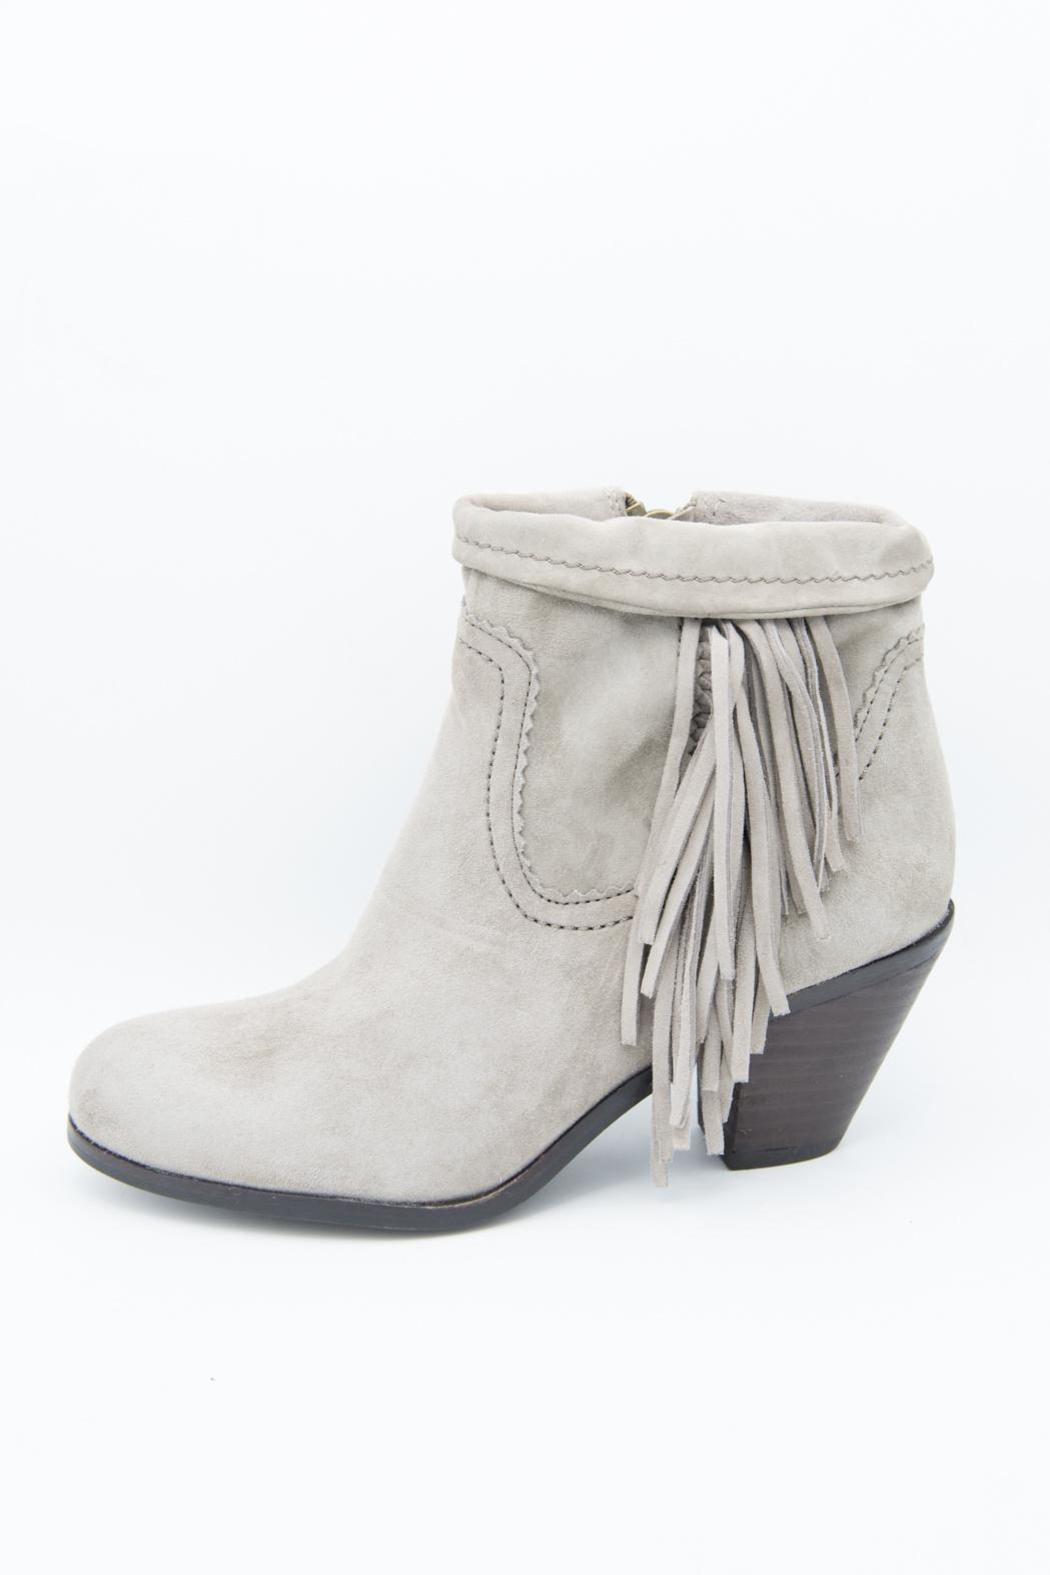 05690acf7932 Sam Edelman Louie Suede Bootie from Colorado by Hoity Toity Boutique ...